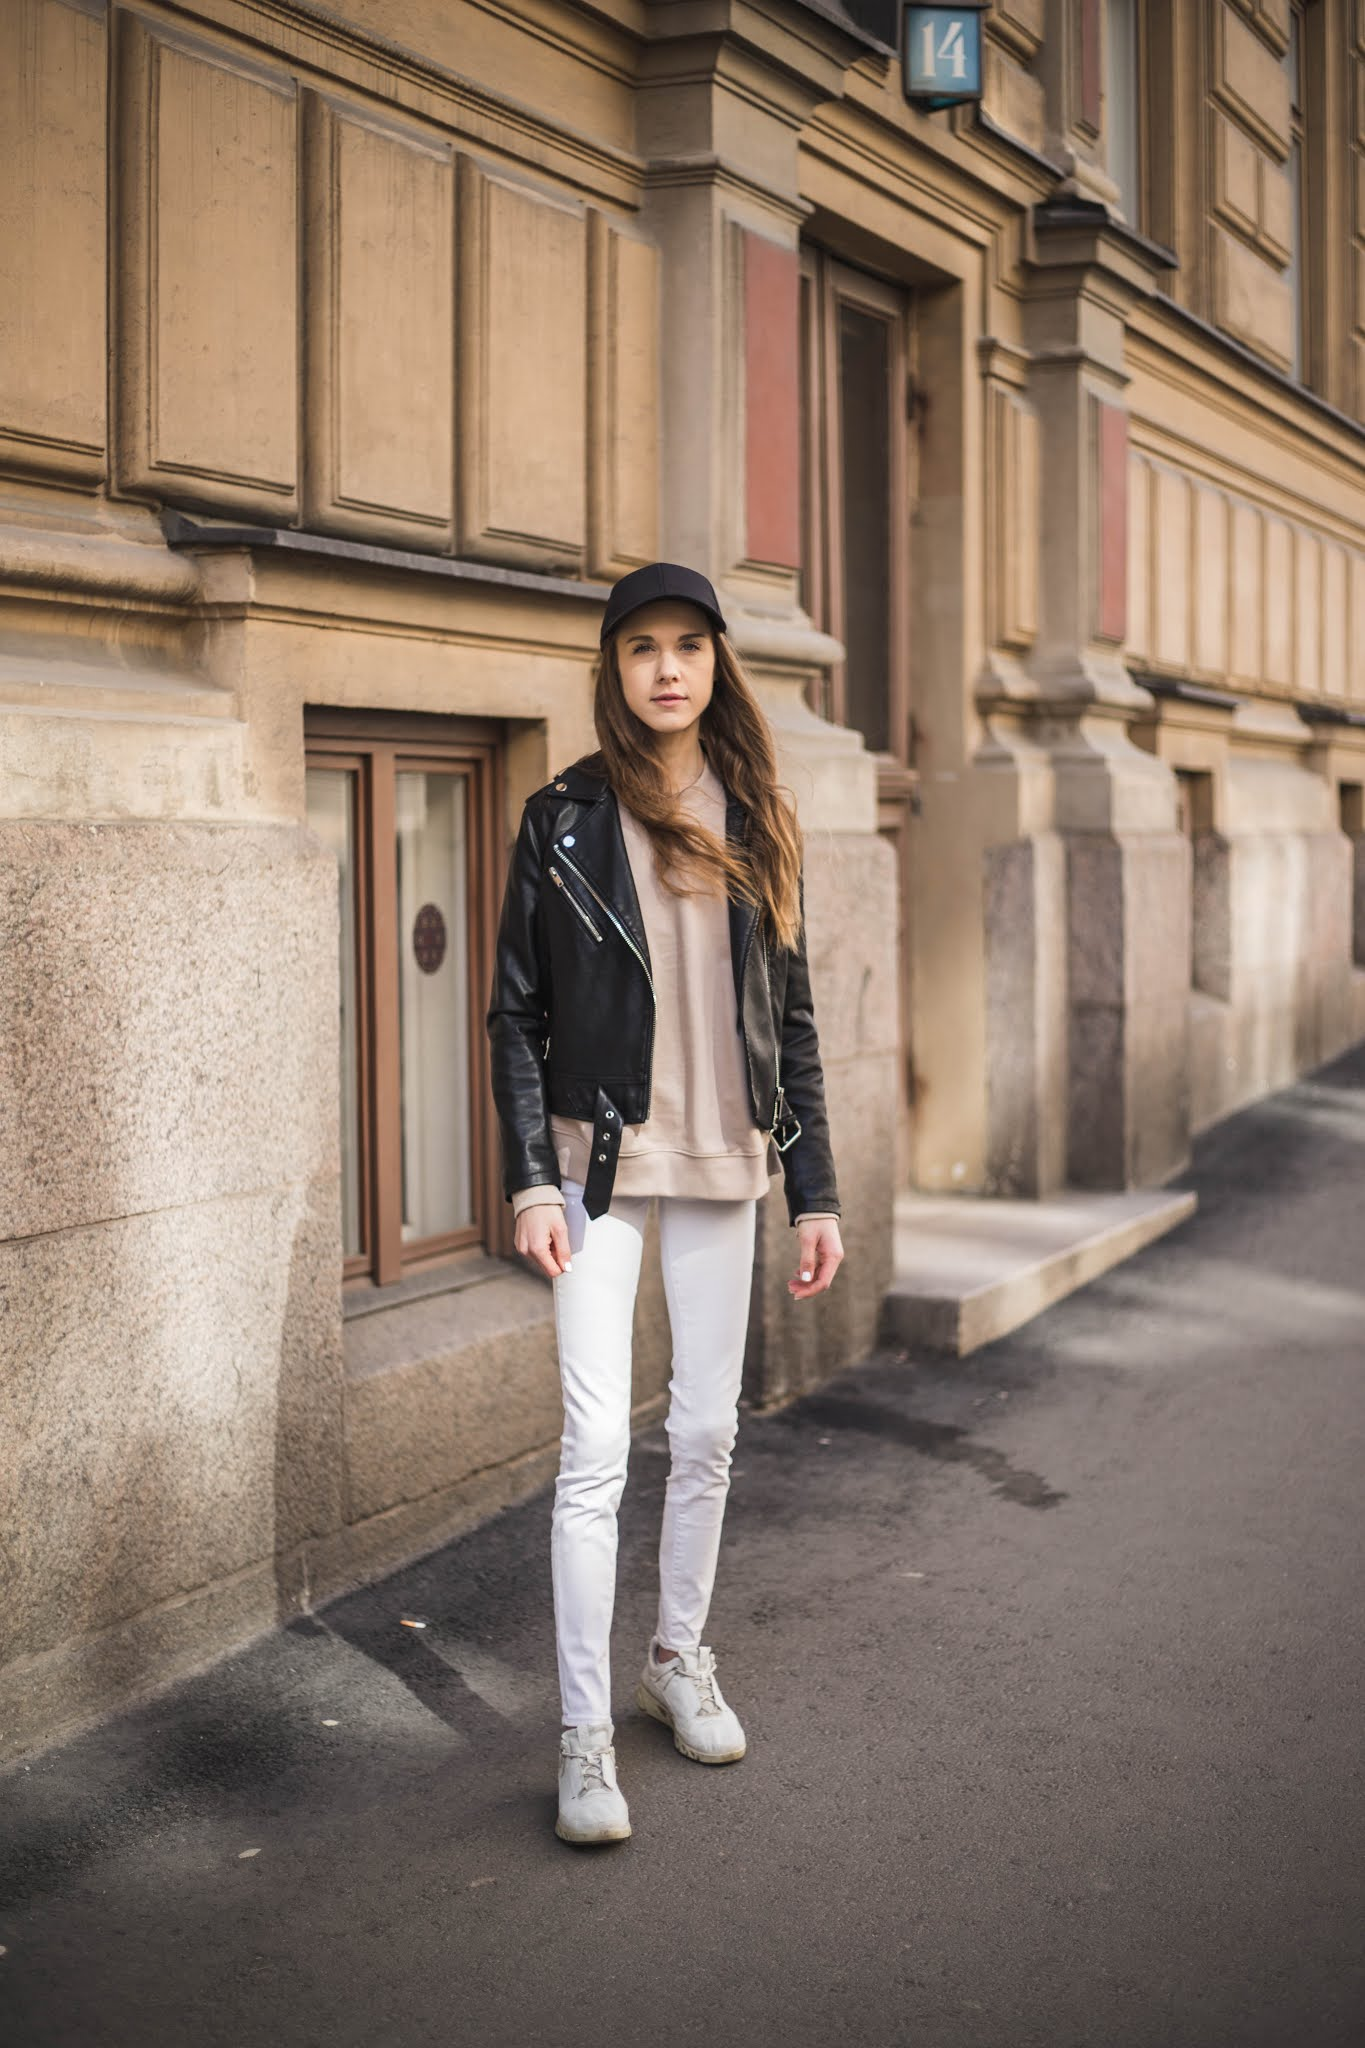 Rento asu lippiksen kanssa // Casual outfit with a cap